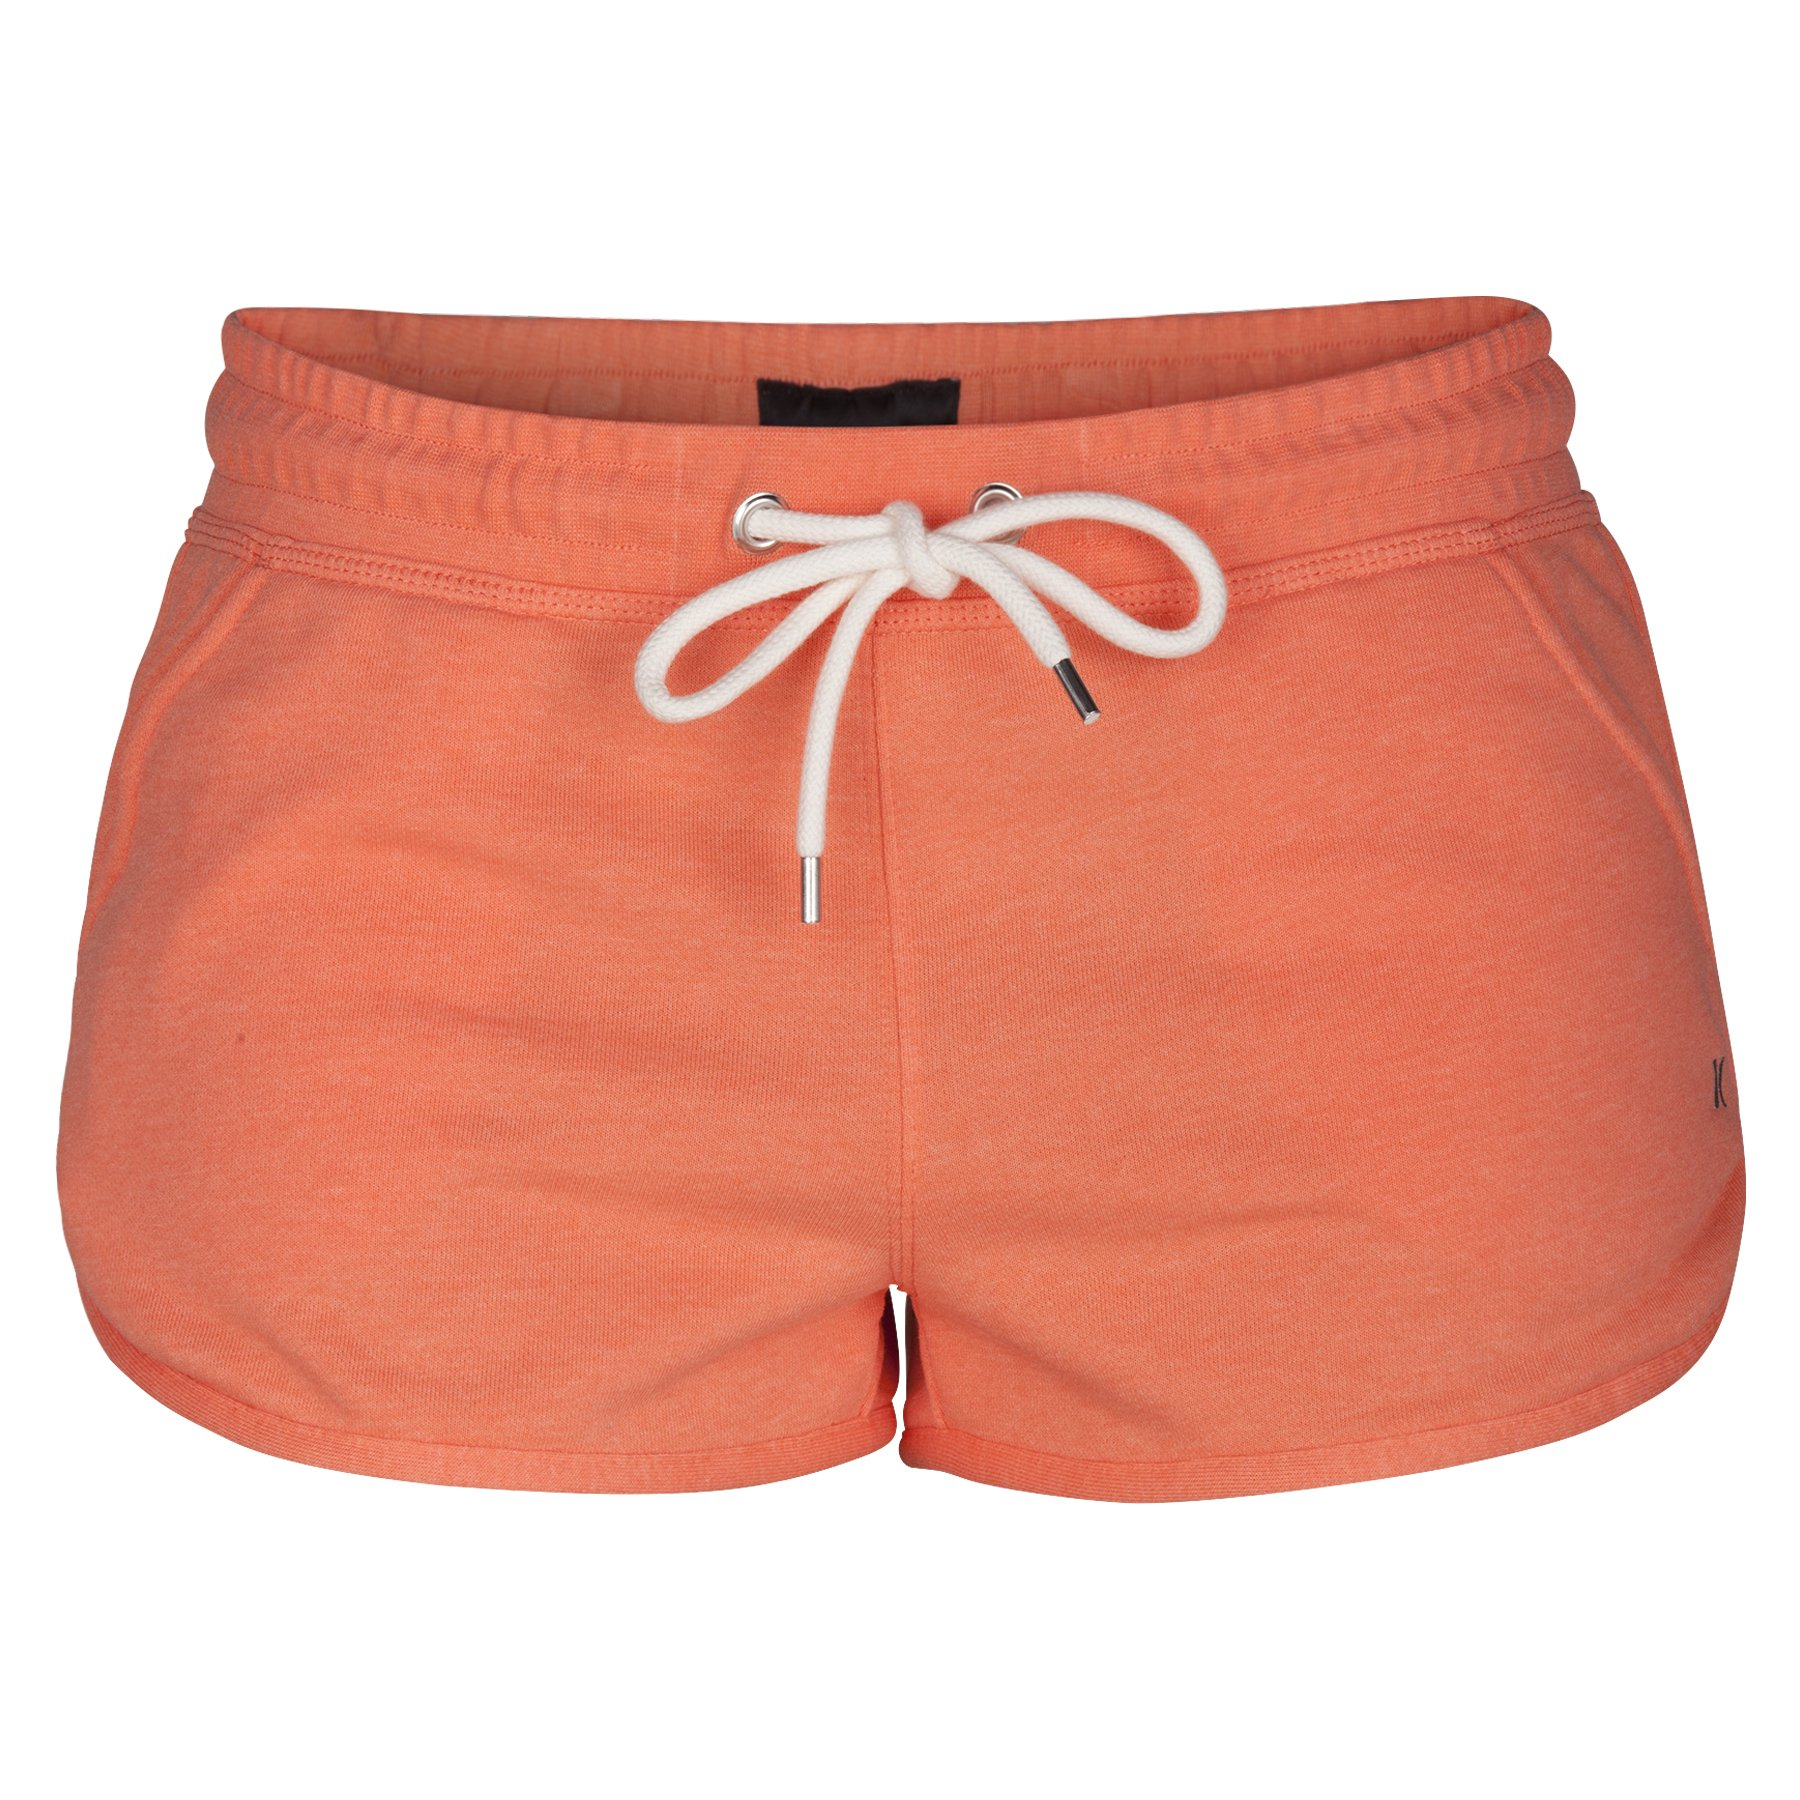 Hurley Women's One And Only 2'' Fleece Shorts, Light Wild Mango Heather - S